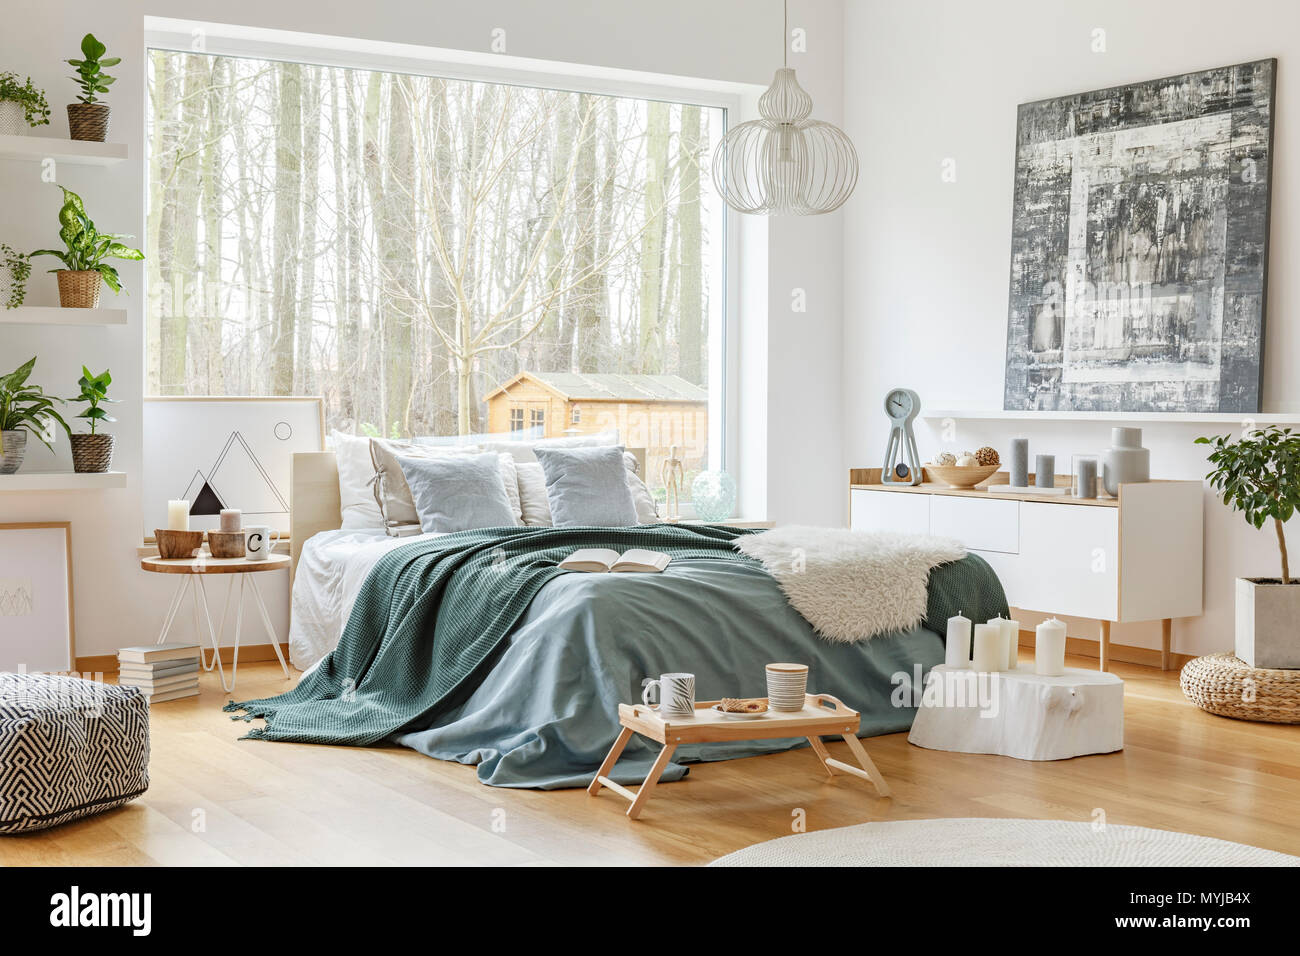 Green and blue bedsheets on bed in bedroom interior with painting on ...